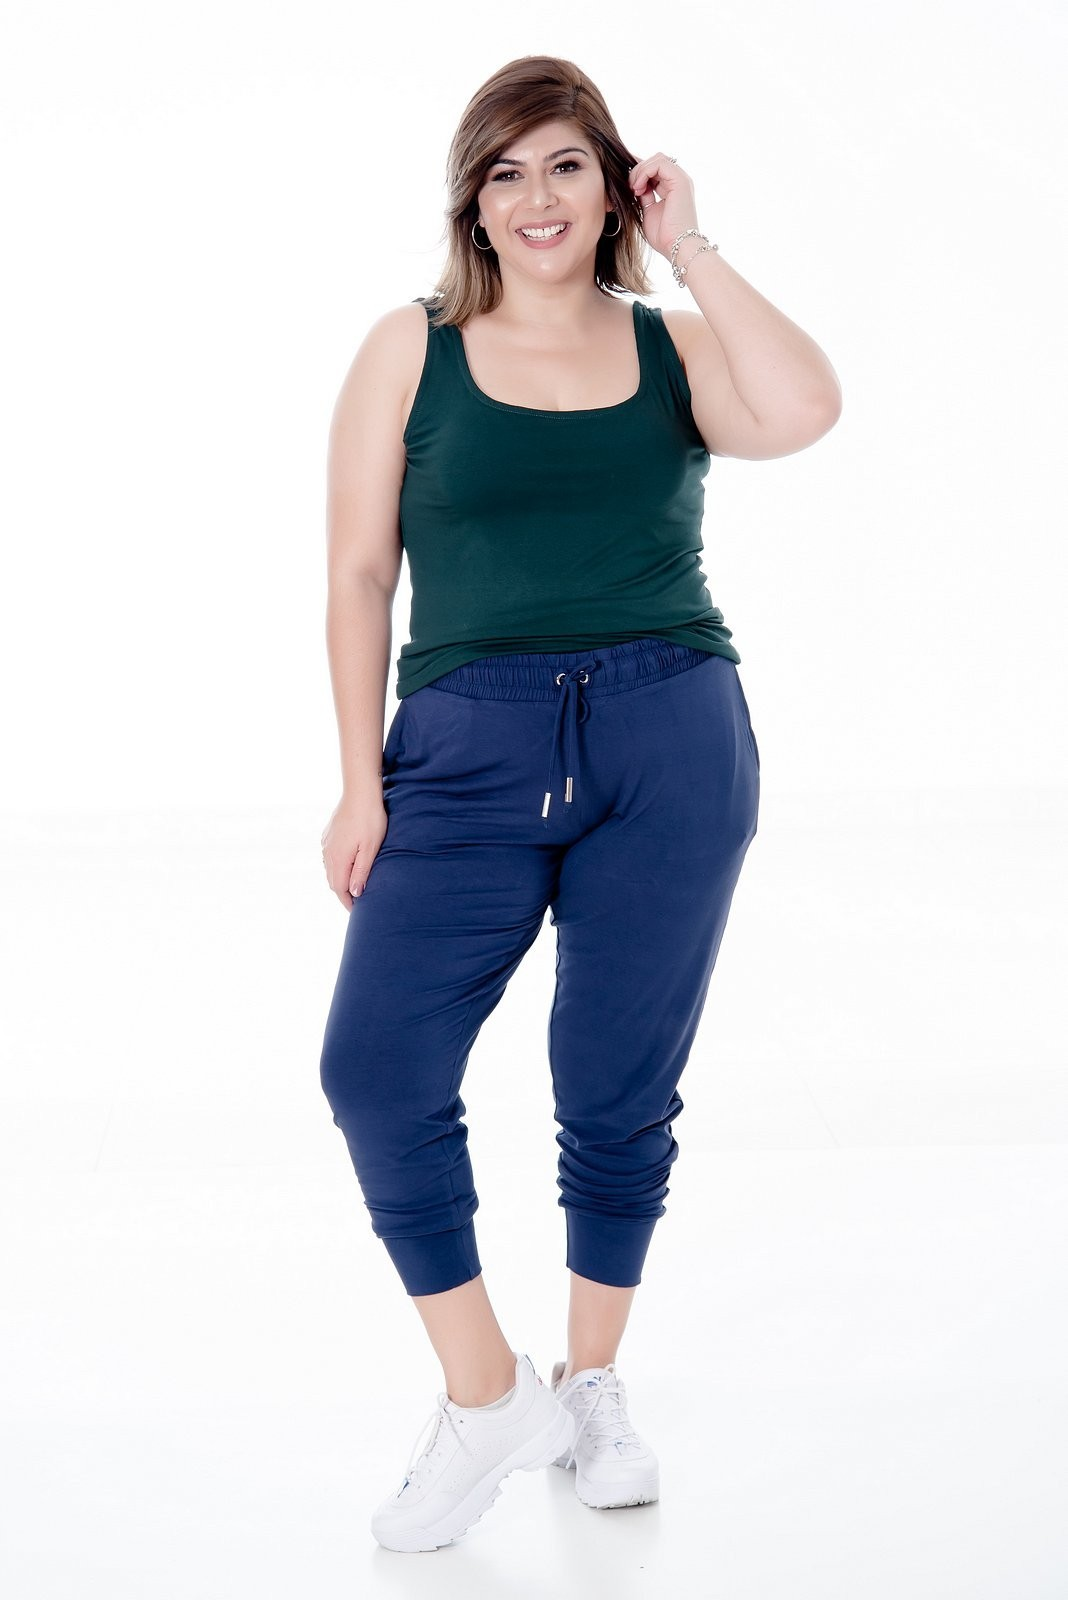 REGATA PLUS SIZE BÁSICA CORES NEUTRAS